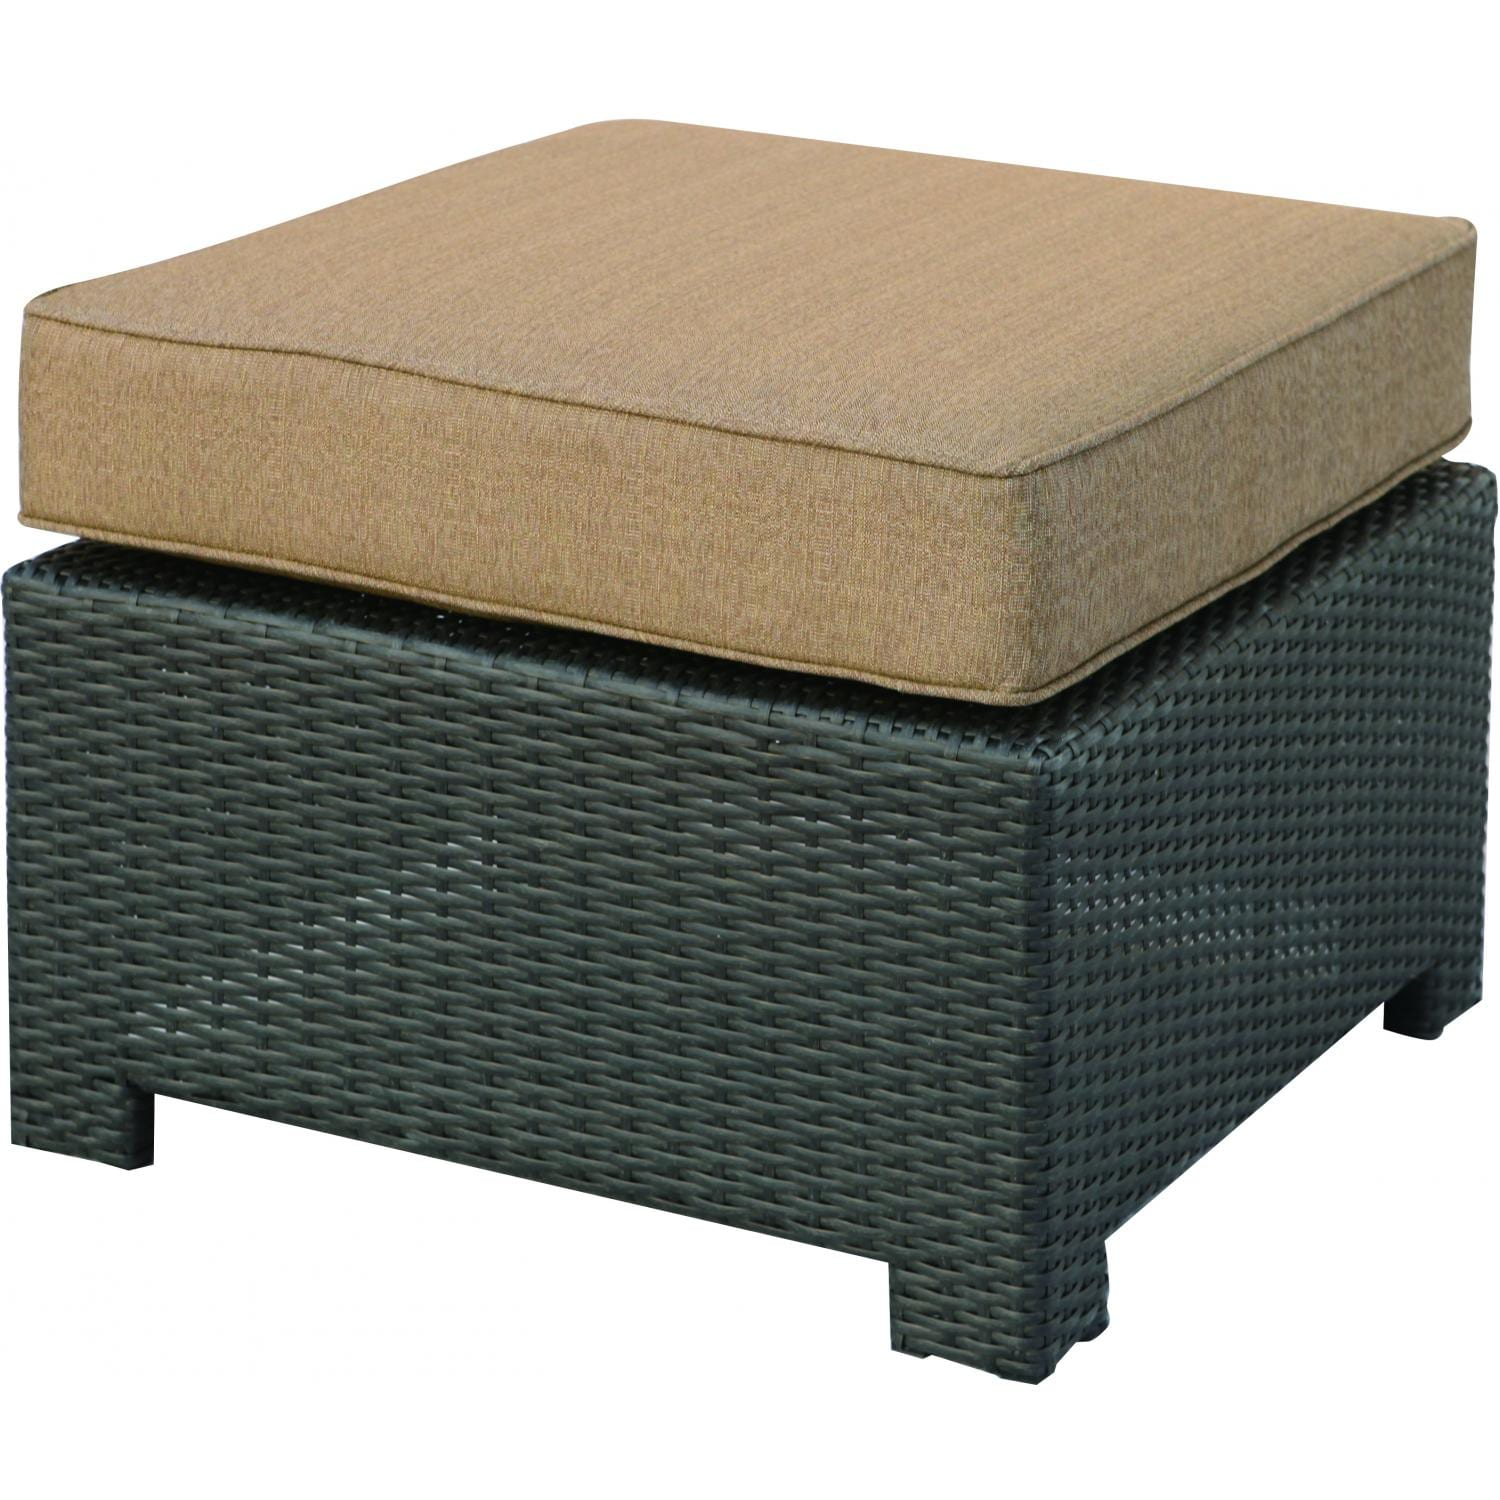 Outdoor Ottomans